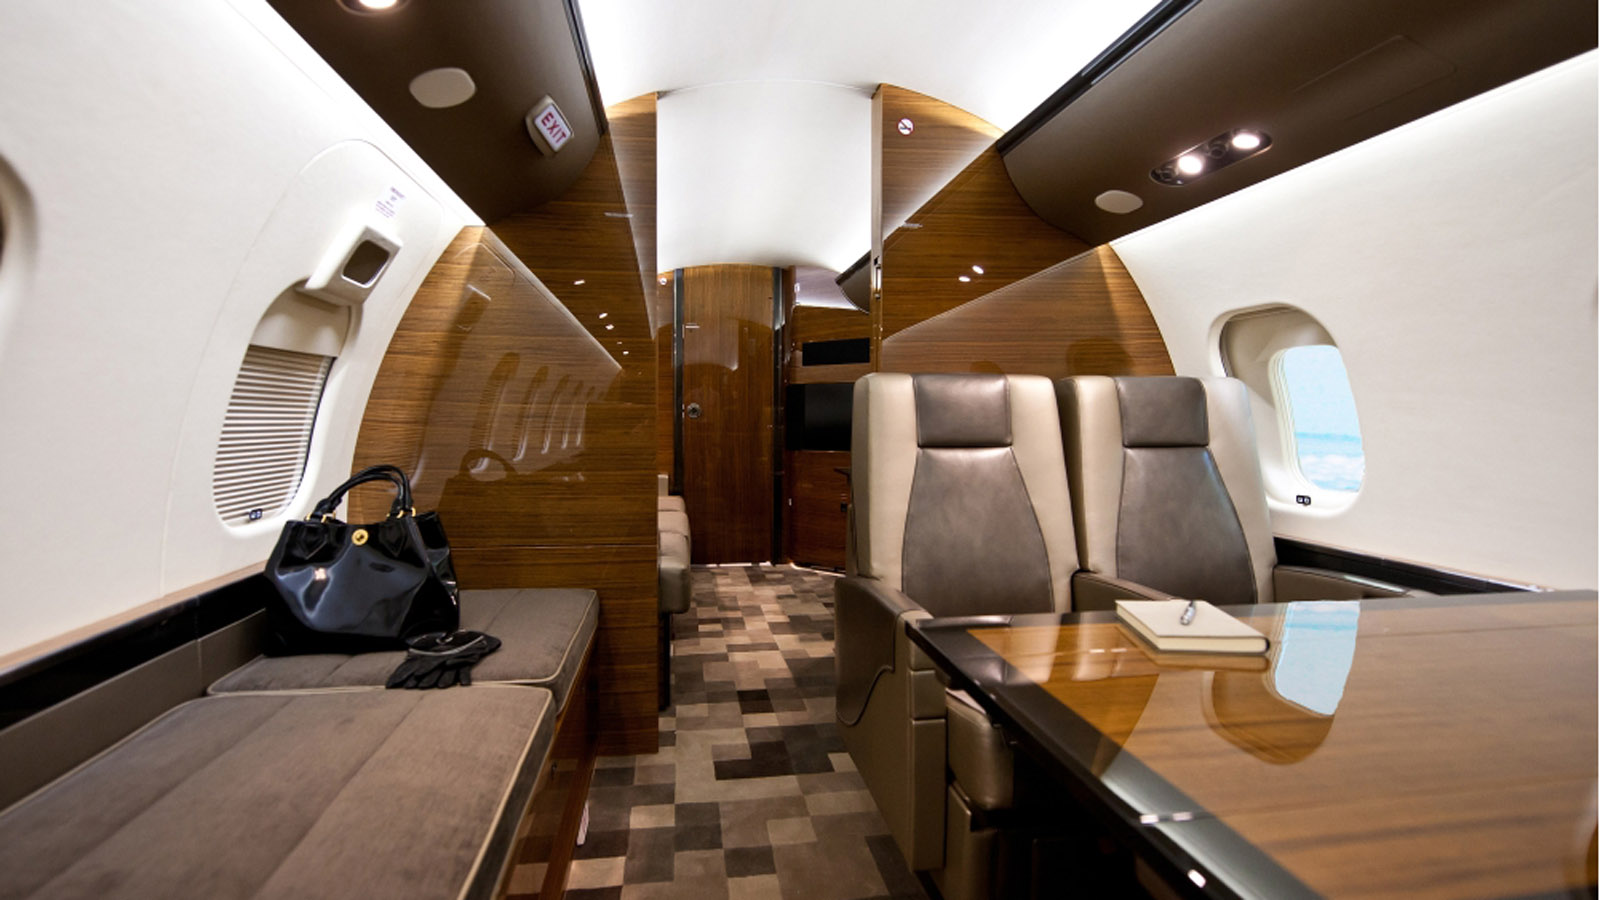 Bombardier_Globalexpress_6000_interior_2